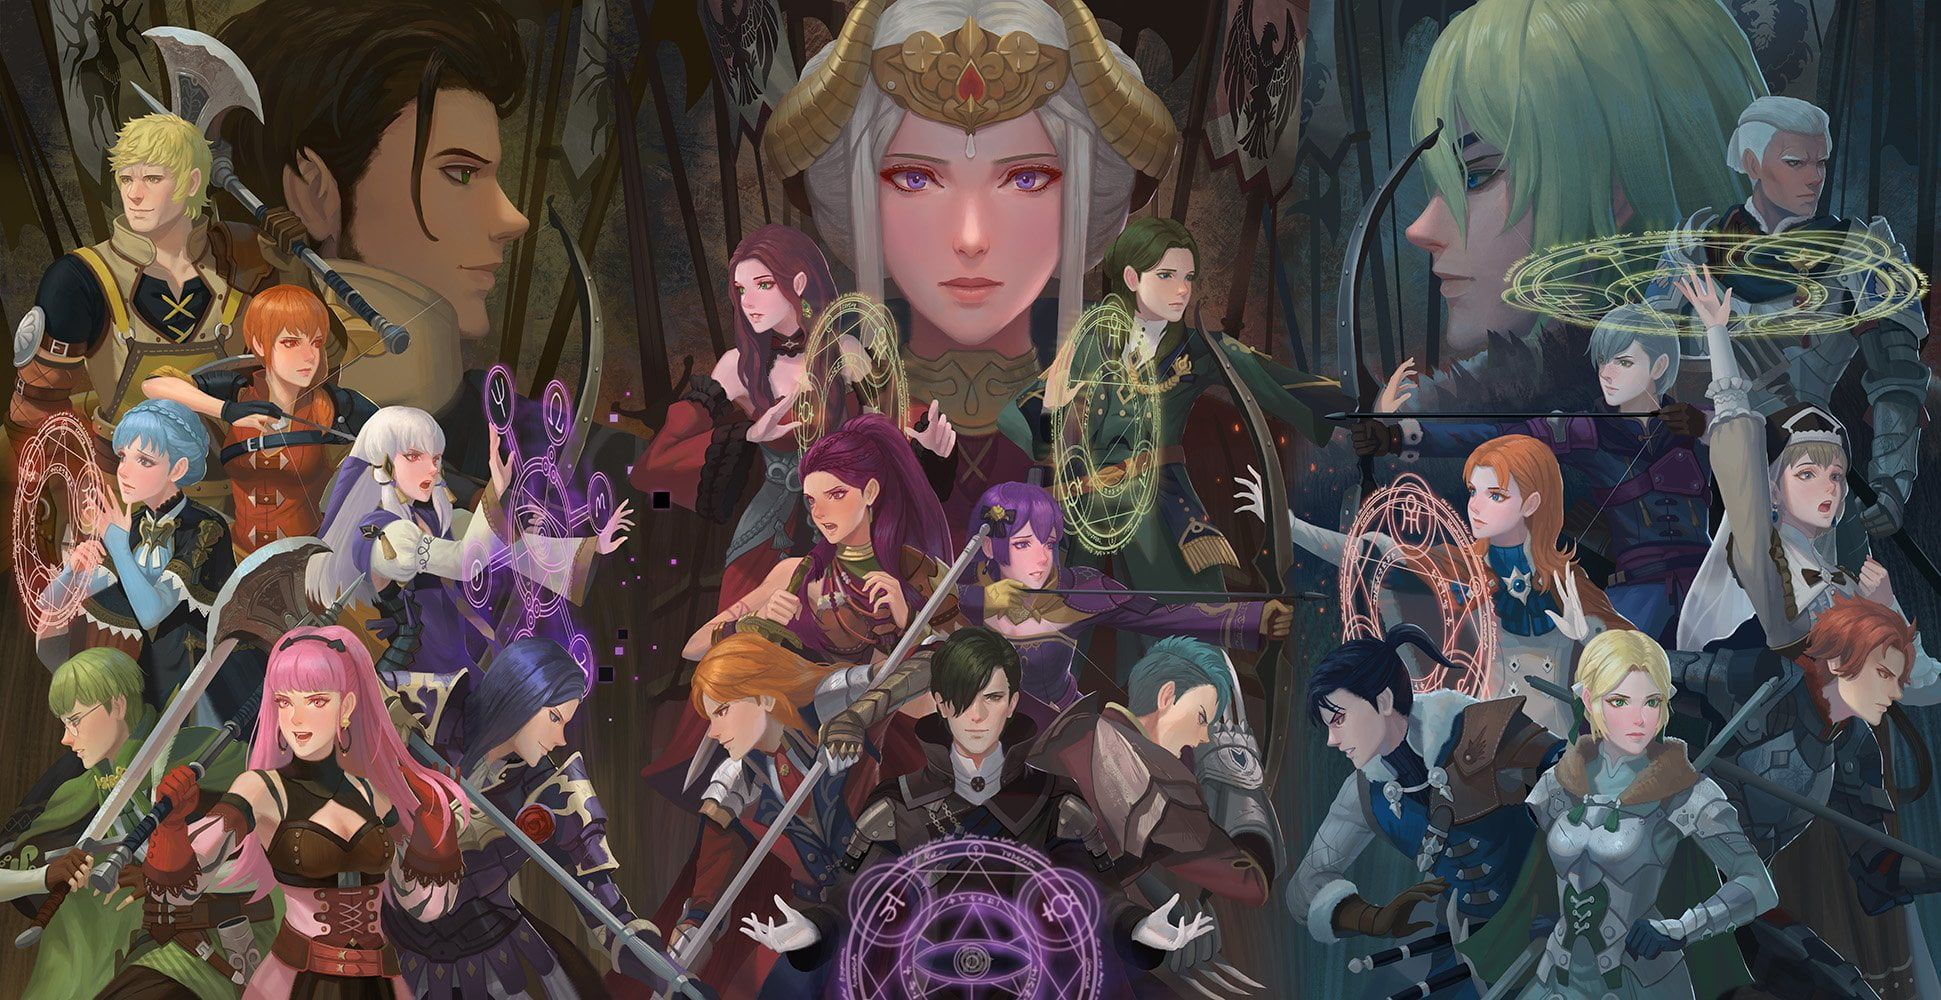 Fire Emblem Three Houses Fire Emblem Video Game Characters Video Game Art Video Games Nintendo Nintendo Switch Fantasy Art Fire Emblem Fire Emblem Games Anime